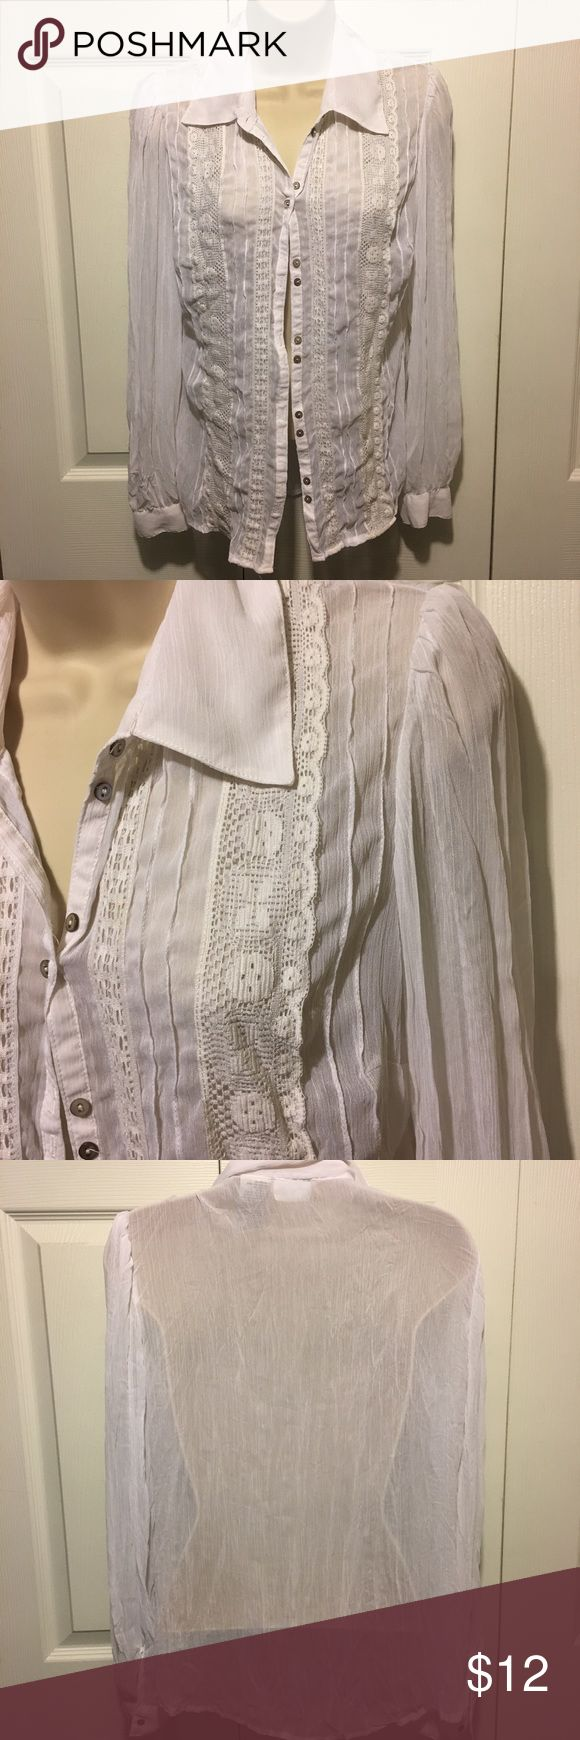 ✅White See Through Blouse Excellent condition. Never been worn. Blouse is see through and has beautiful embroidery. Combine with any other item with a ✅ for a $15 bundle. Or add 3 more items & get 30% off! White Stag Tops Button Down Shirts